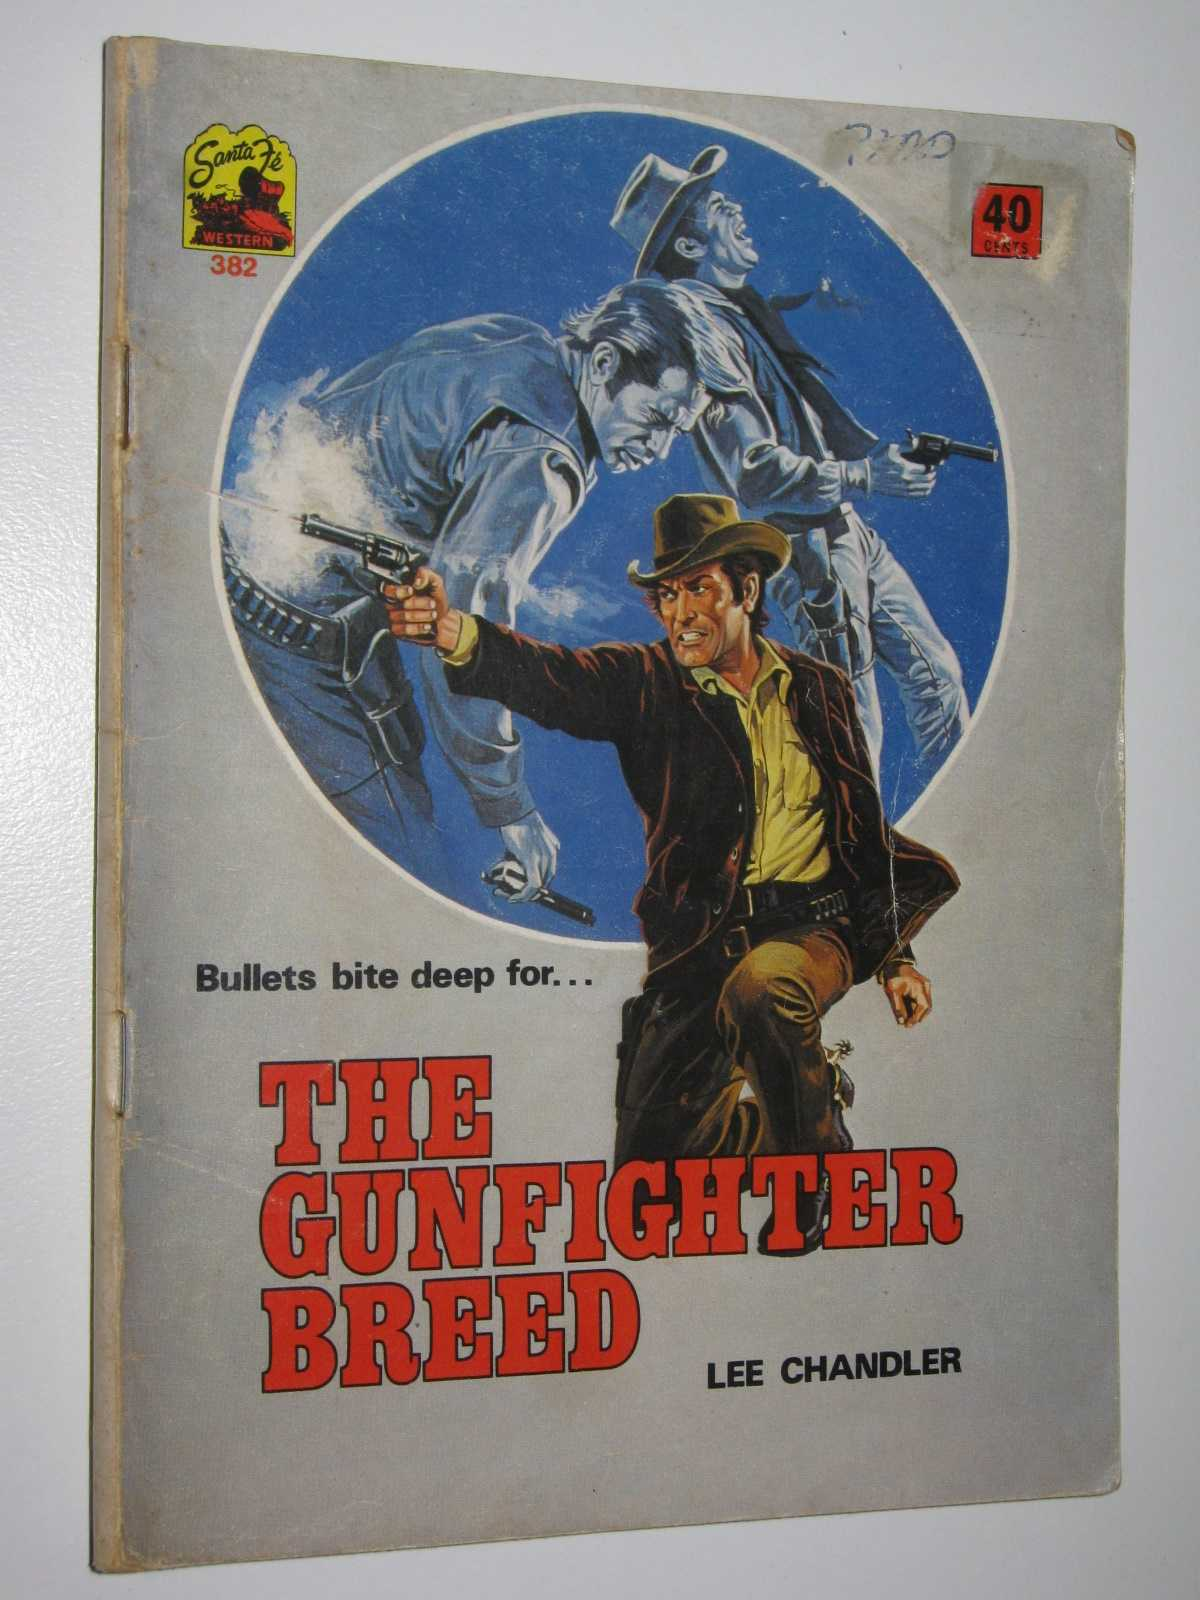 Image for The Gunfighter Breed - Santa Fe Western Series #382